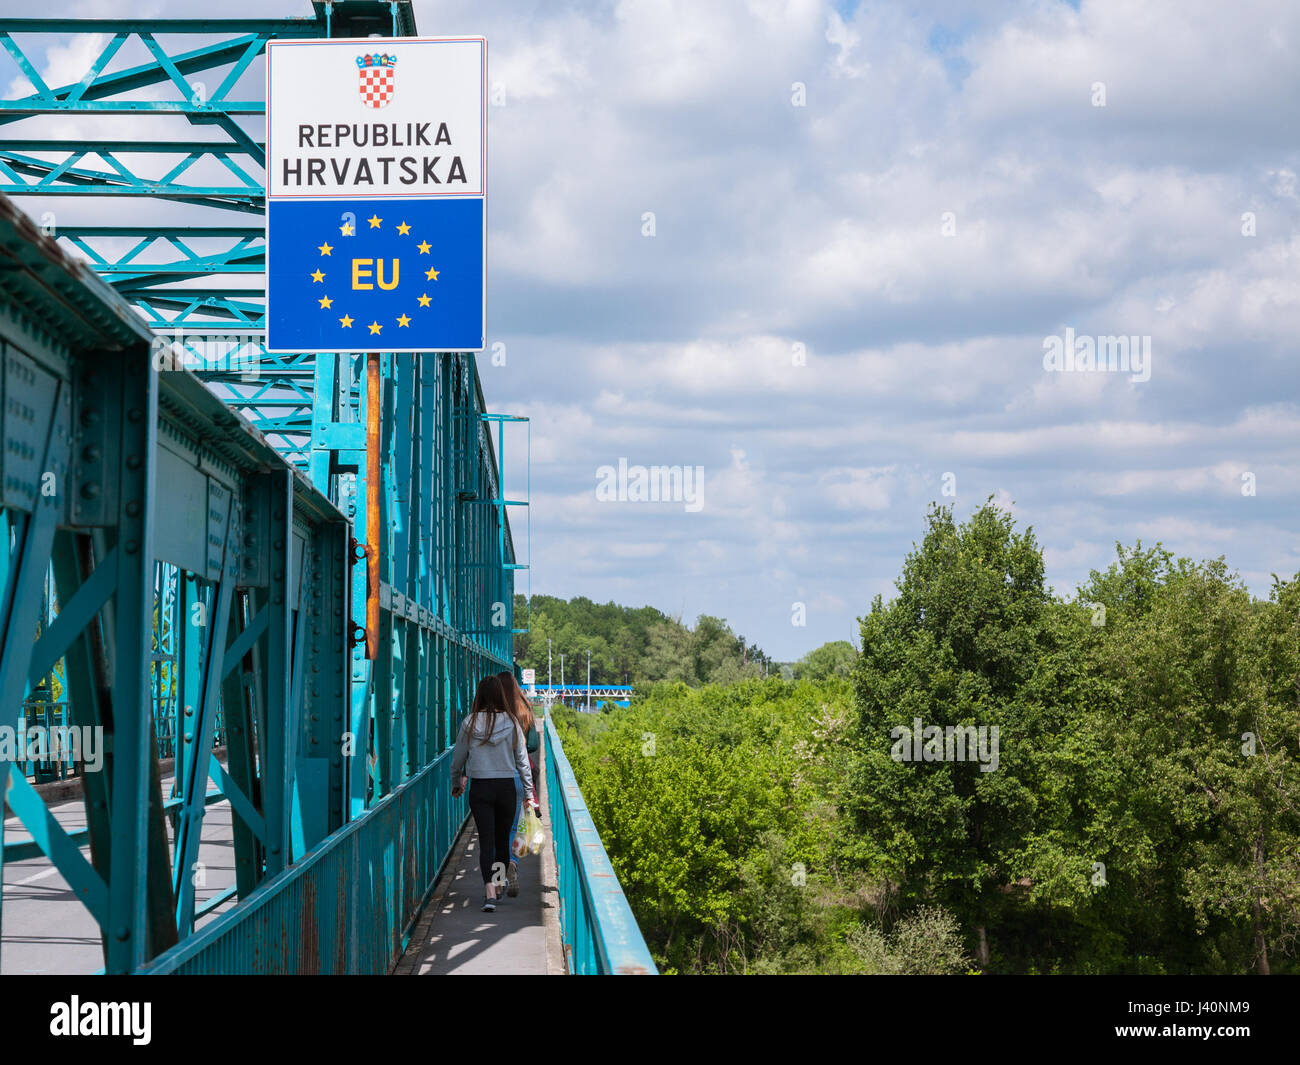 BRCKO, BOSNIA AND HERZEGOVINA - MAY 6, 2017: People entering the EU crossing the border between Bosnia and Croatia Stock Photo